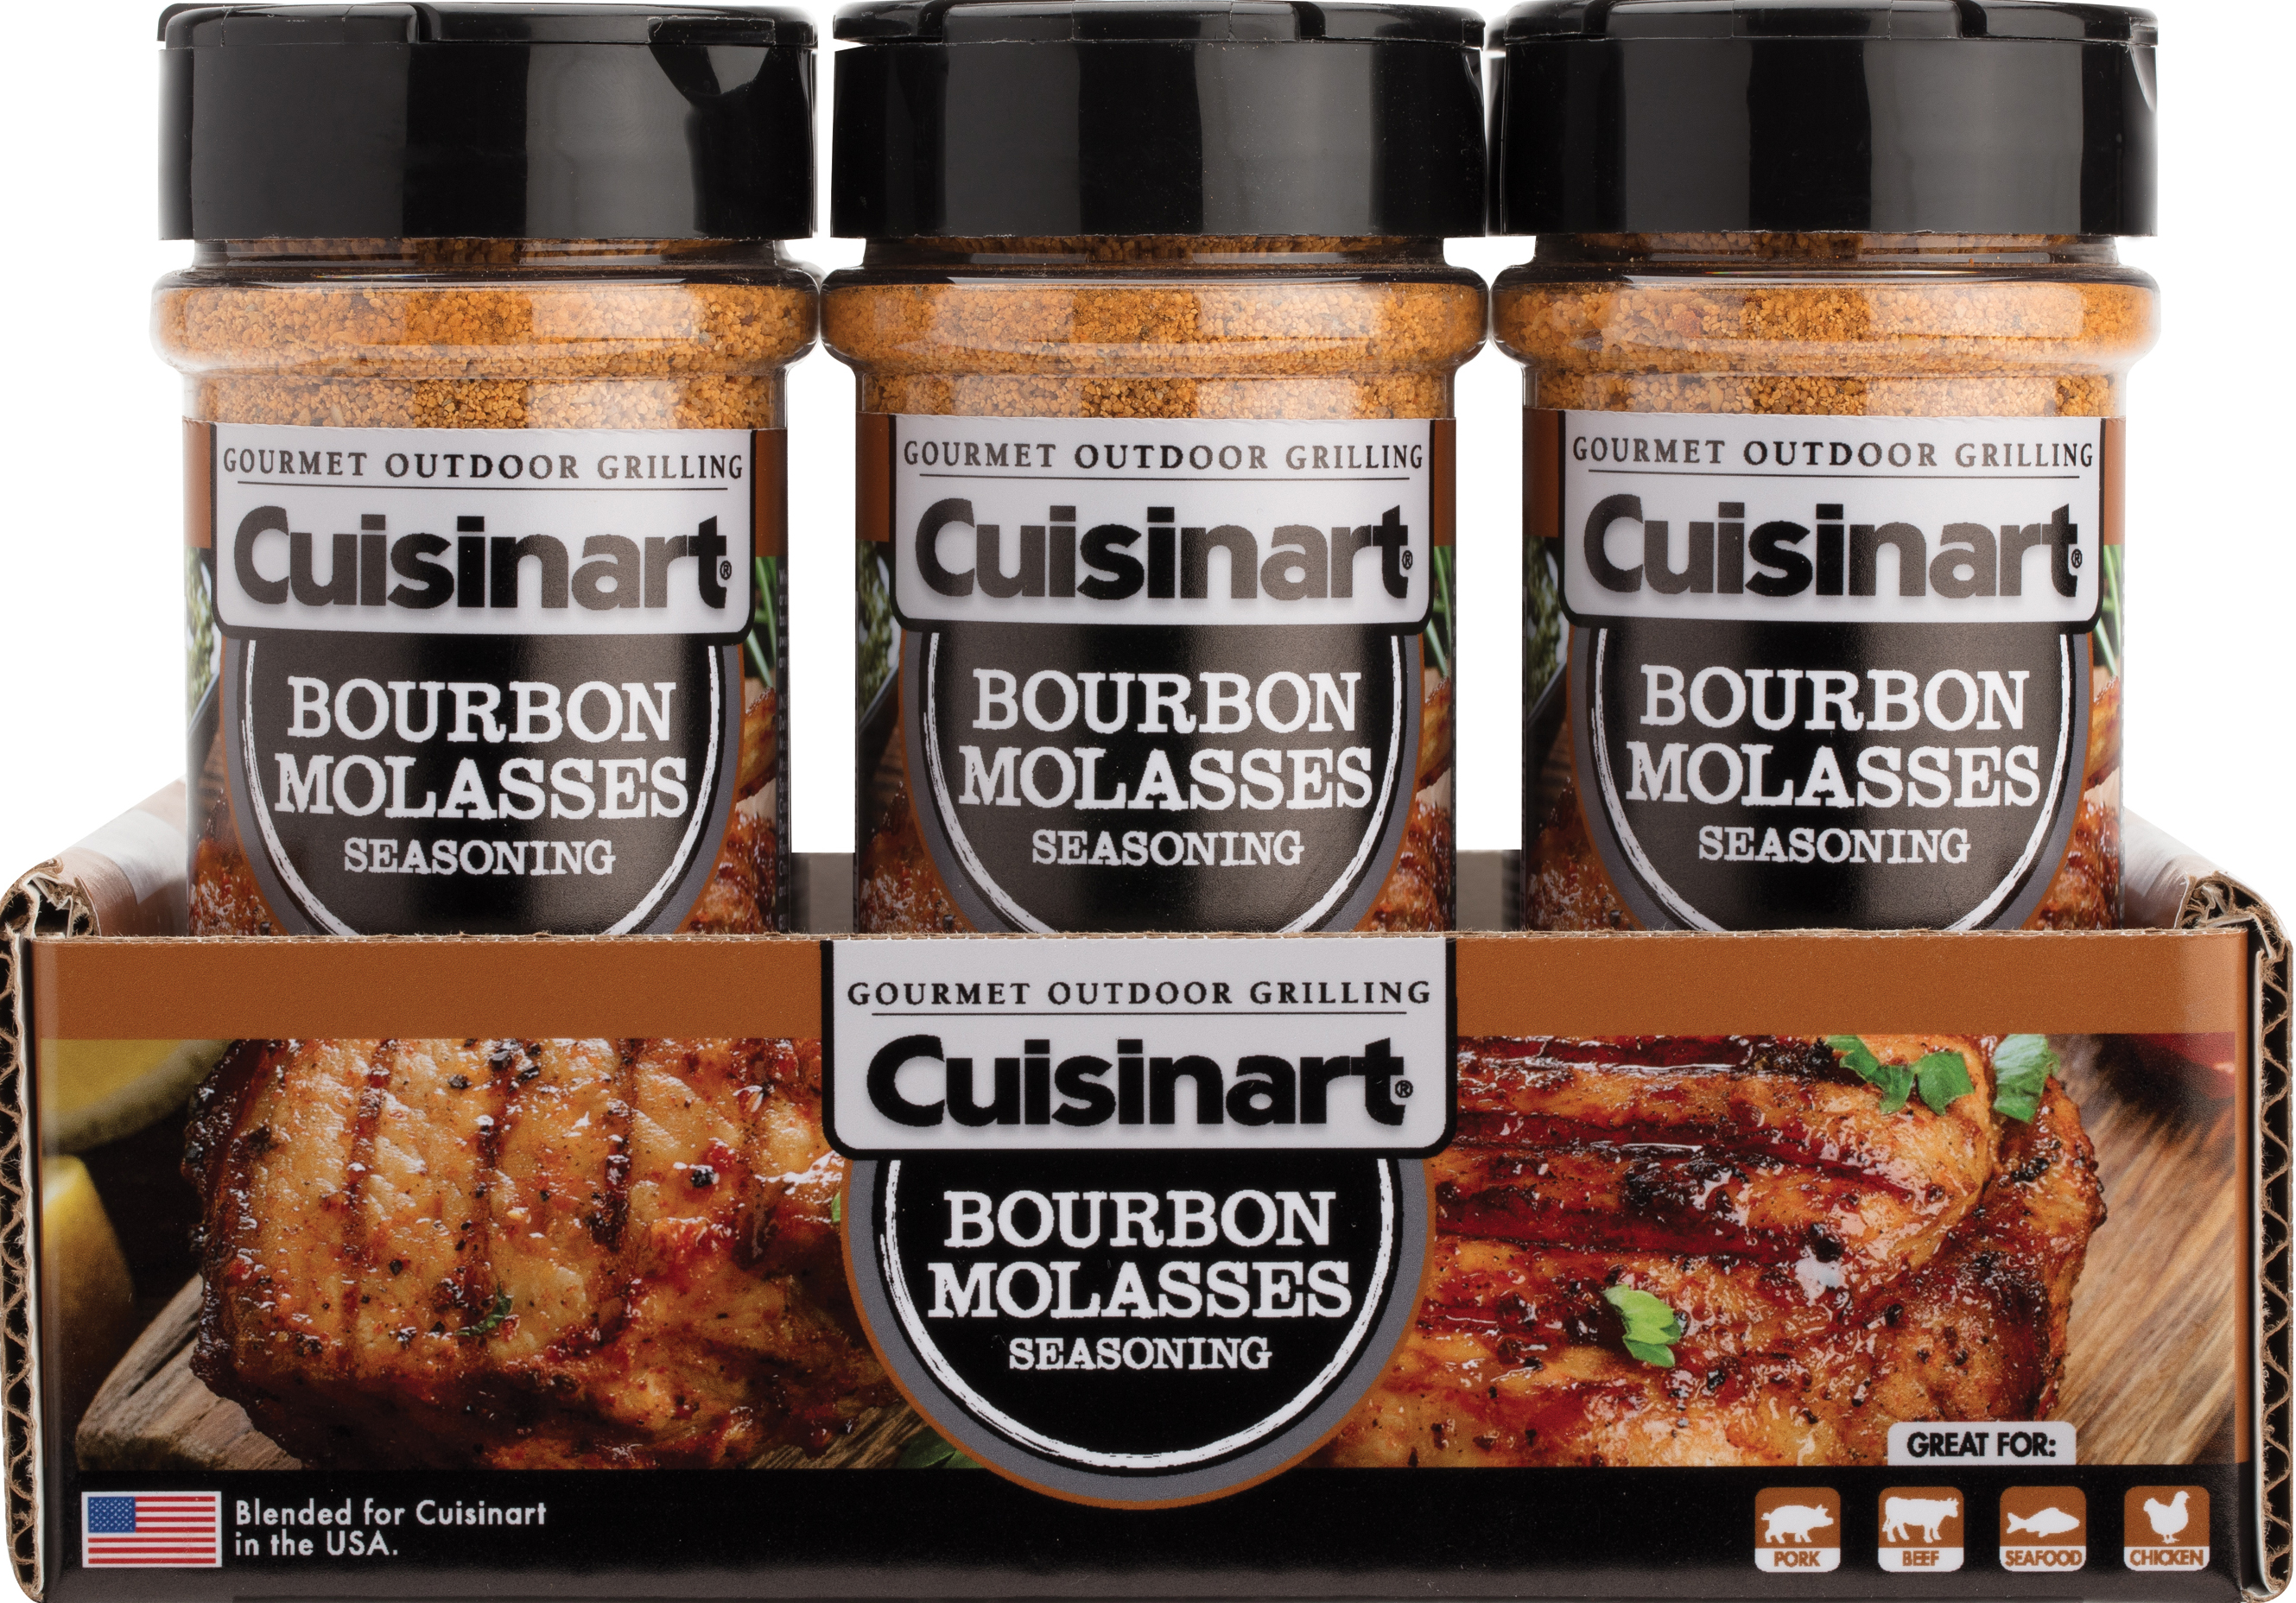 Cuisinart Bourbon Molasses Seasoning - Walmart com